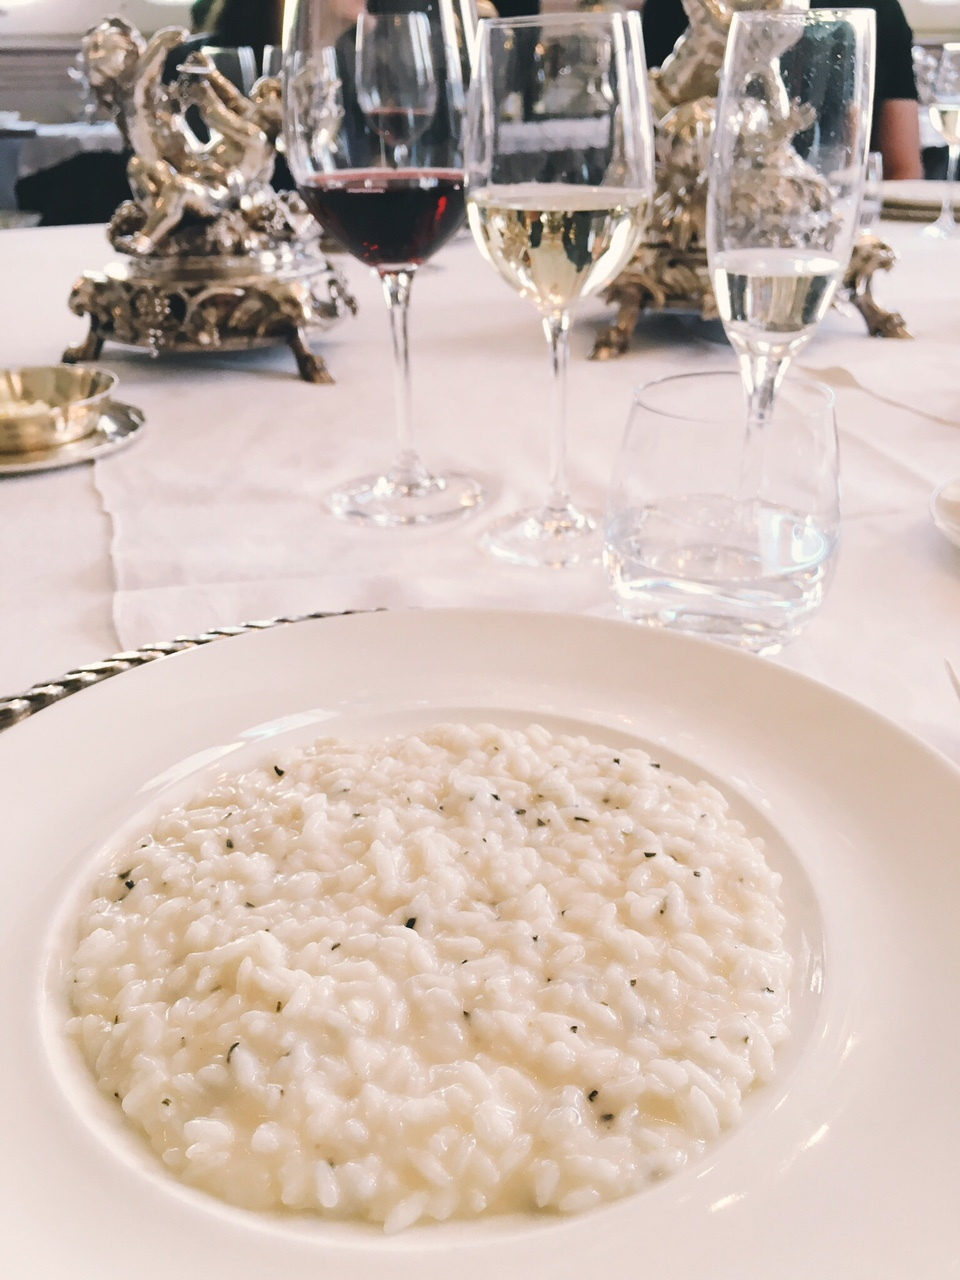 Rosemary risotto and red and white wine at table in Villa Sola Cabiati